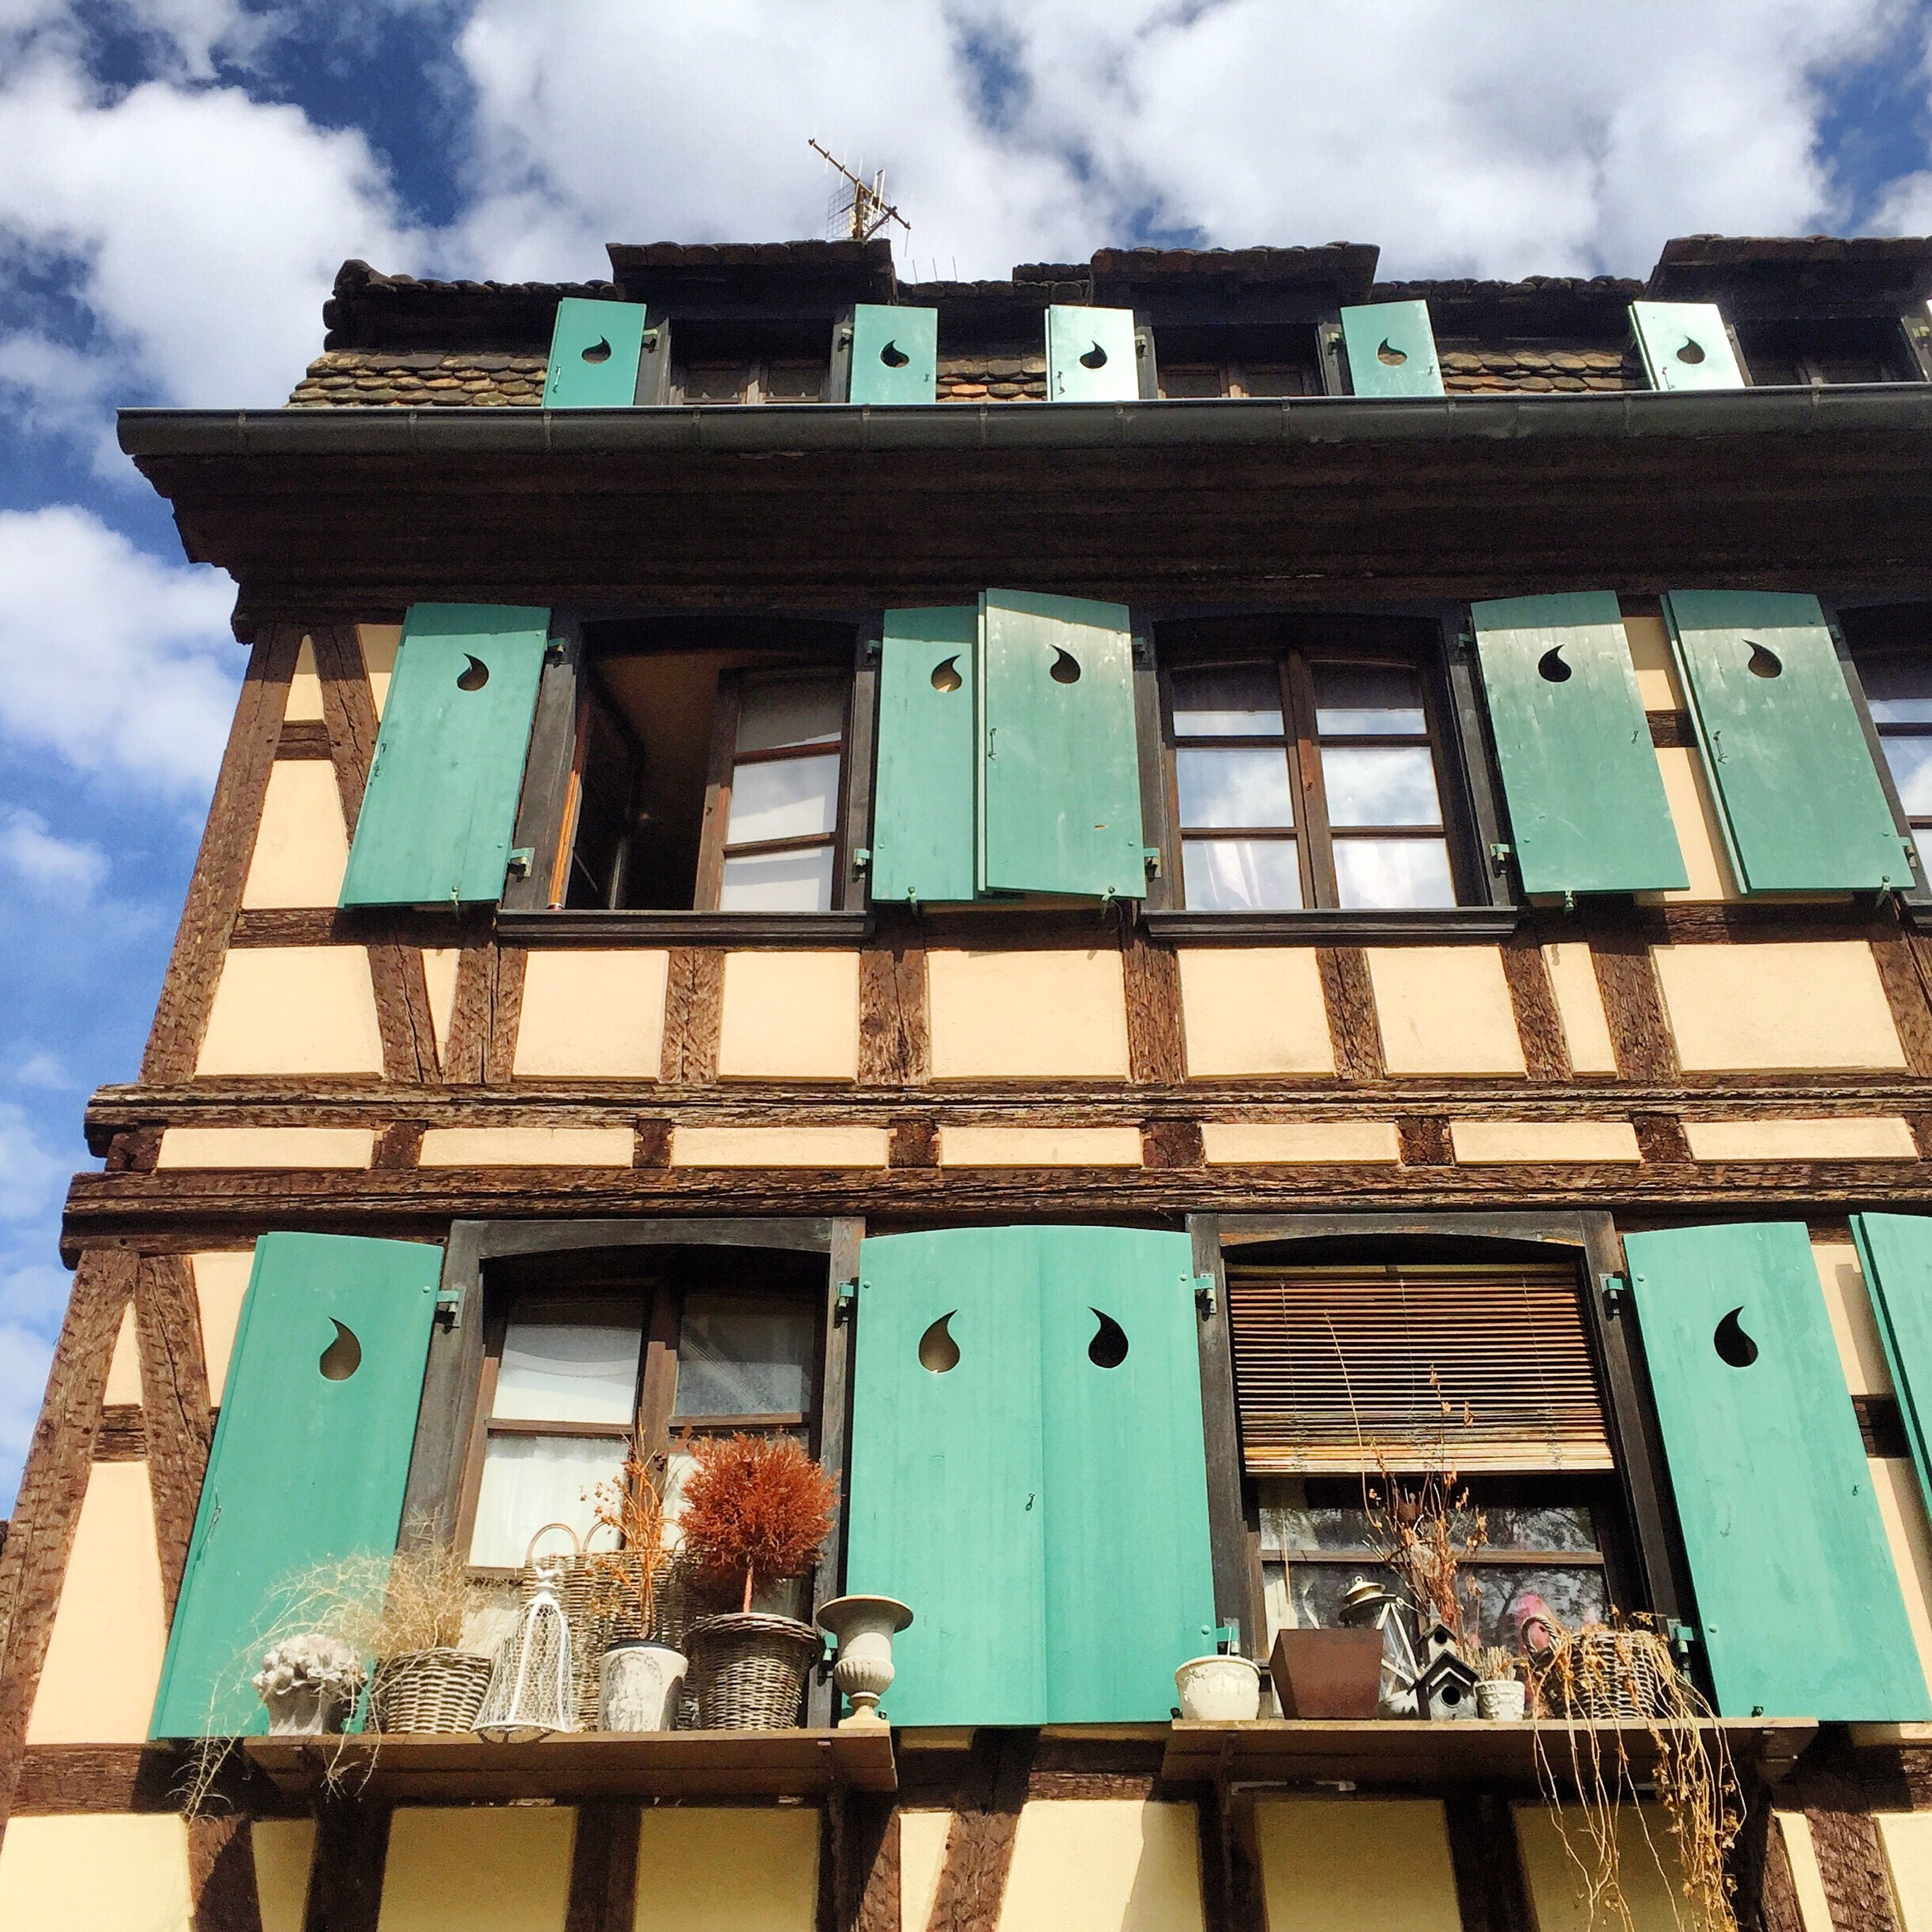 architecture, building exterior, built structure, low angle view, sky, old, window, abandoned, damaged, weathered, blue, residential building, cloud - sky, building, obsolete, run-down, day, residential structure, house, outdoors